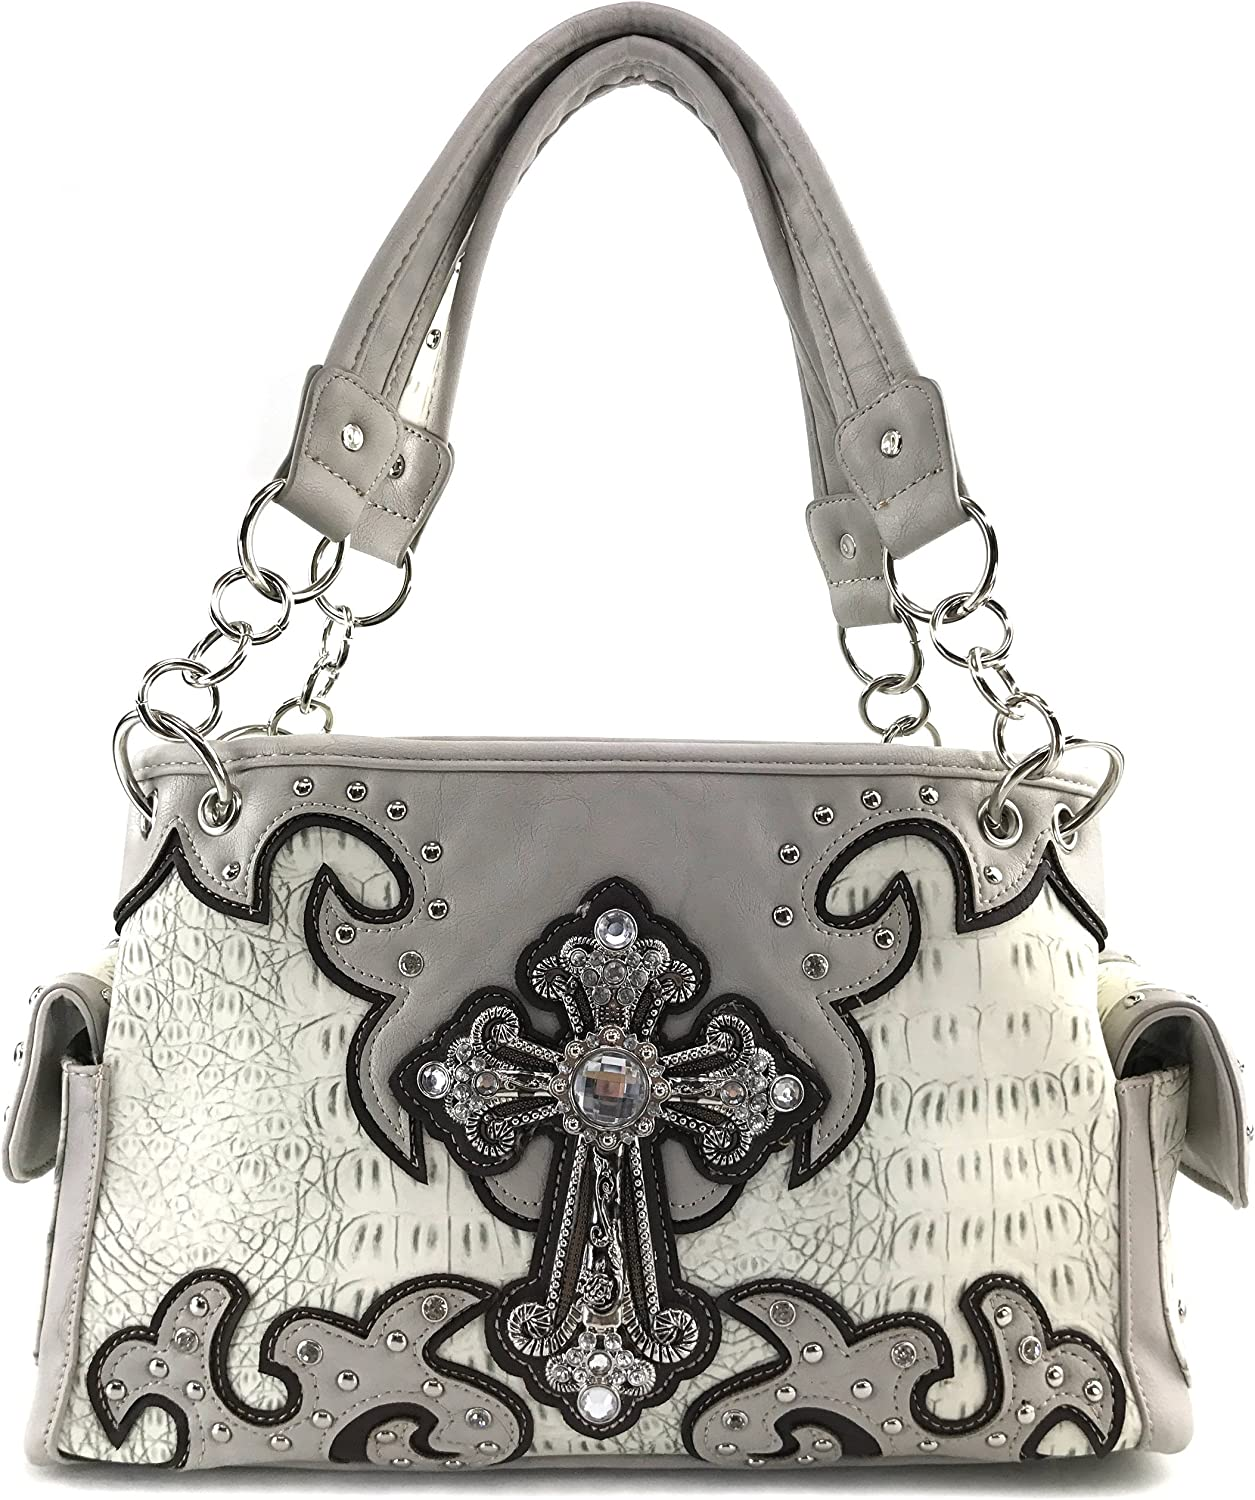 Justin West Concealed Carry Max 46% OFF Western Croc Color Cross Indianapolis Mall Duo Shoulde